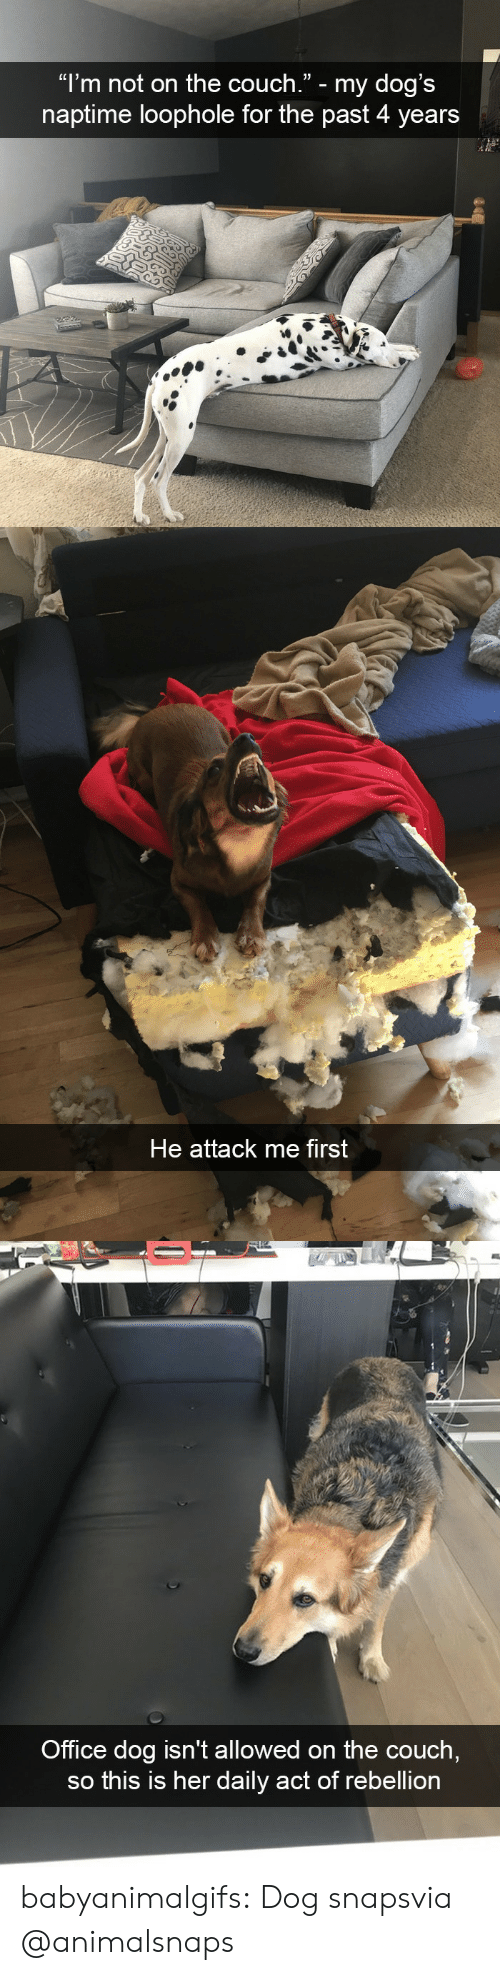 "Dogs, Tumblr, and Blog: ""l'm not on the couch."" - my dog's  naptime loophole for the past 4 years   He attack me first   Office dog isn't allowed on the couch  so this is her daily act of rebellion babyanimalgifs:  Dog snapsvia @animalsnaps"